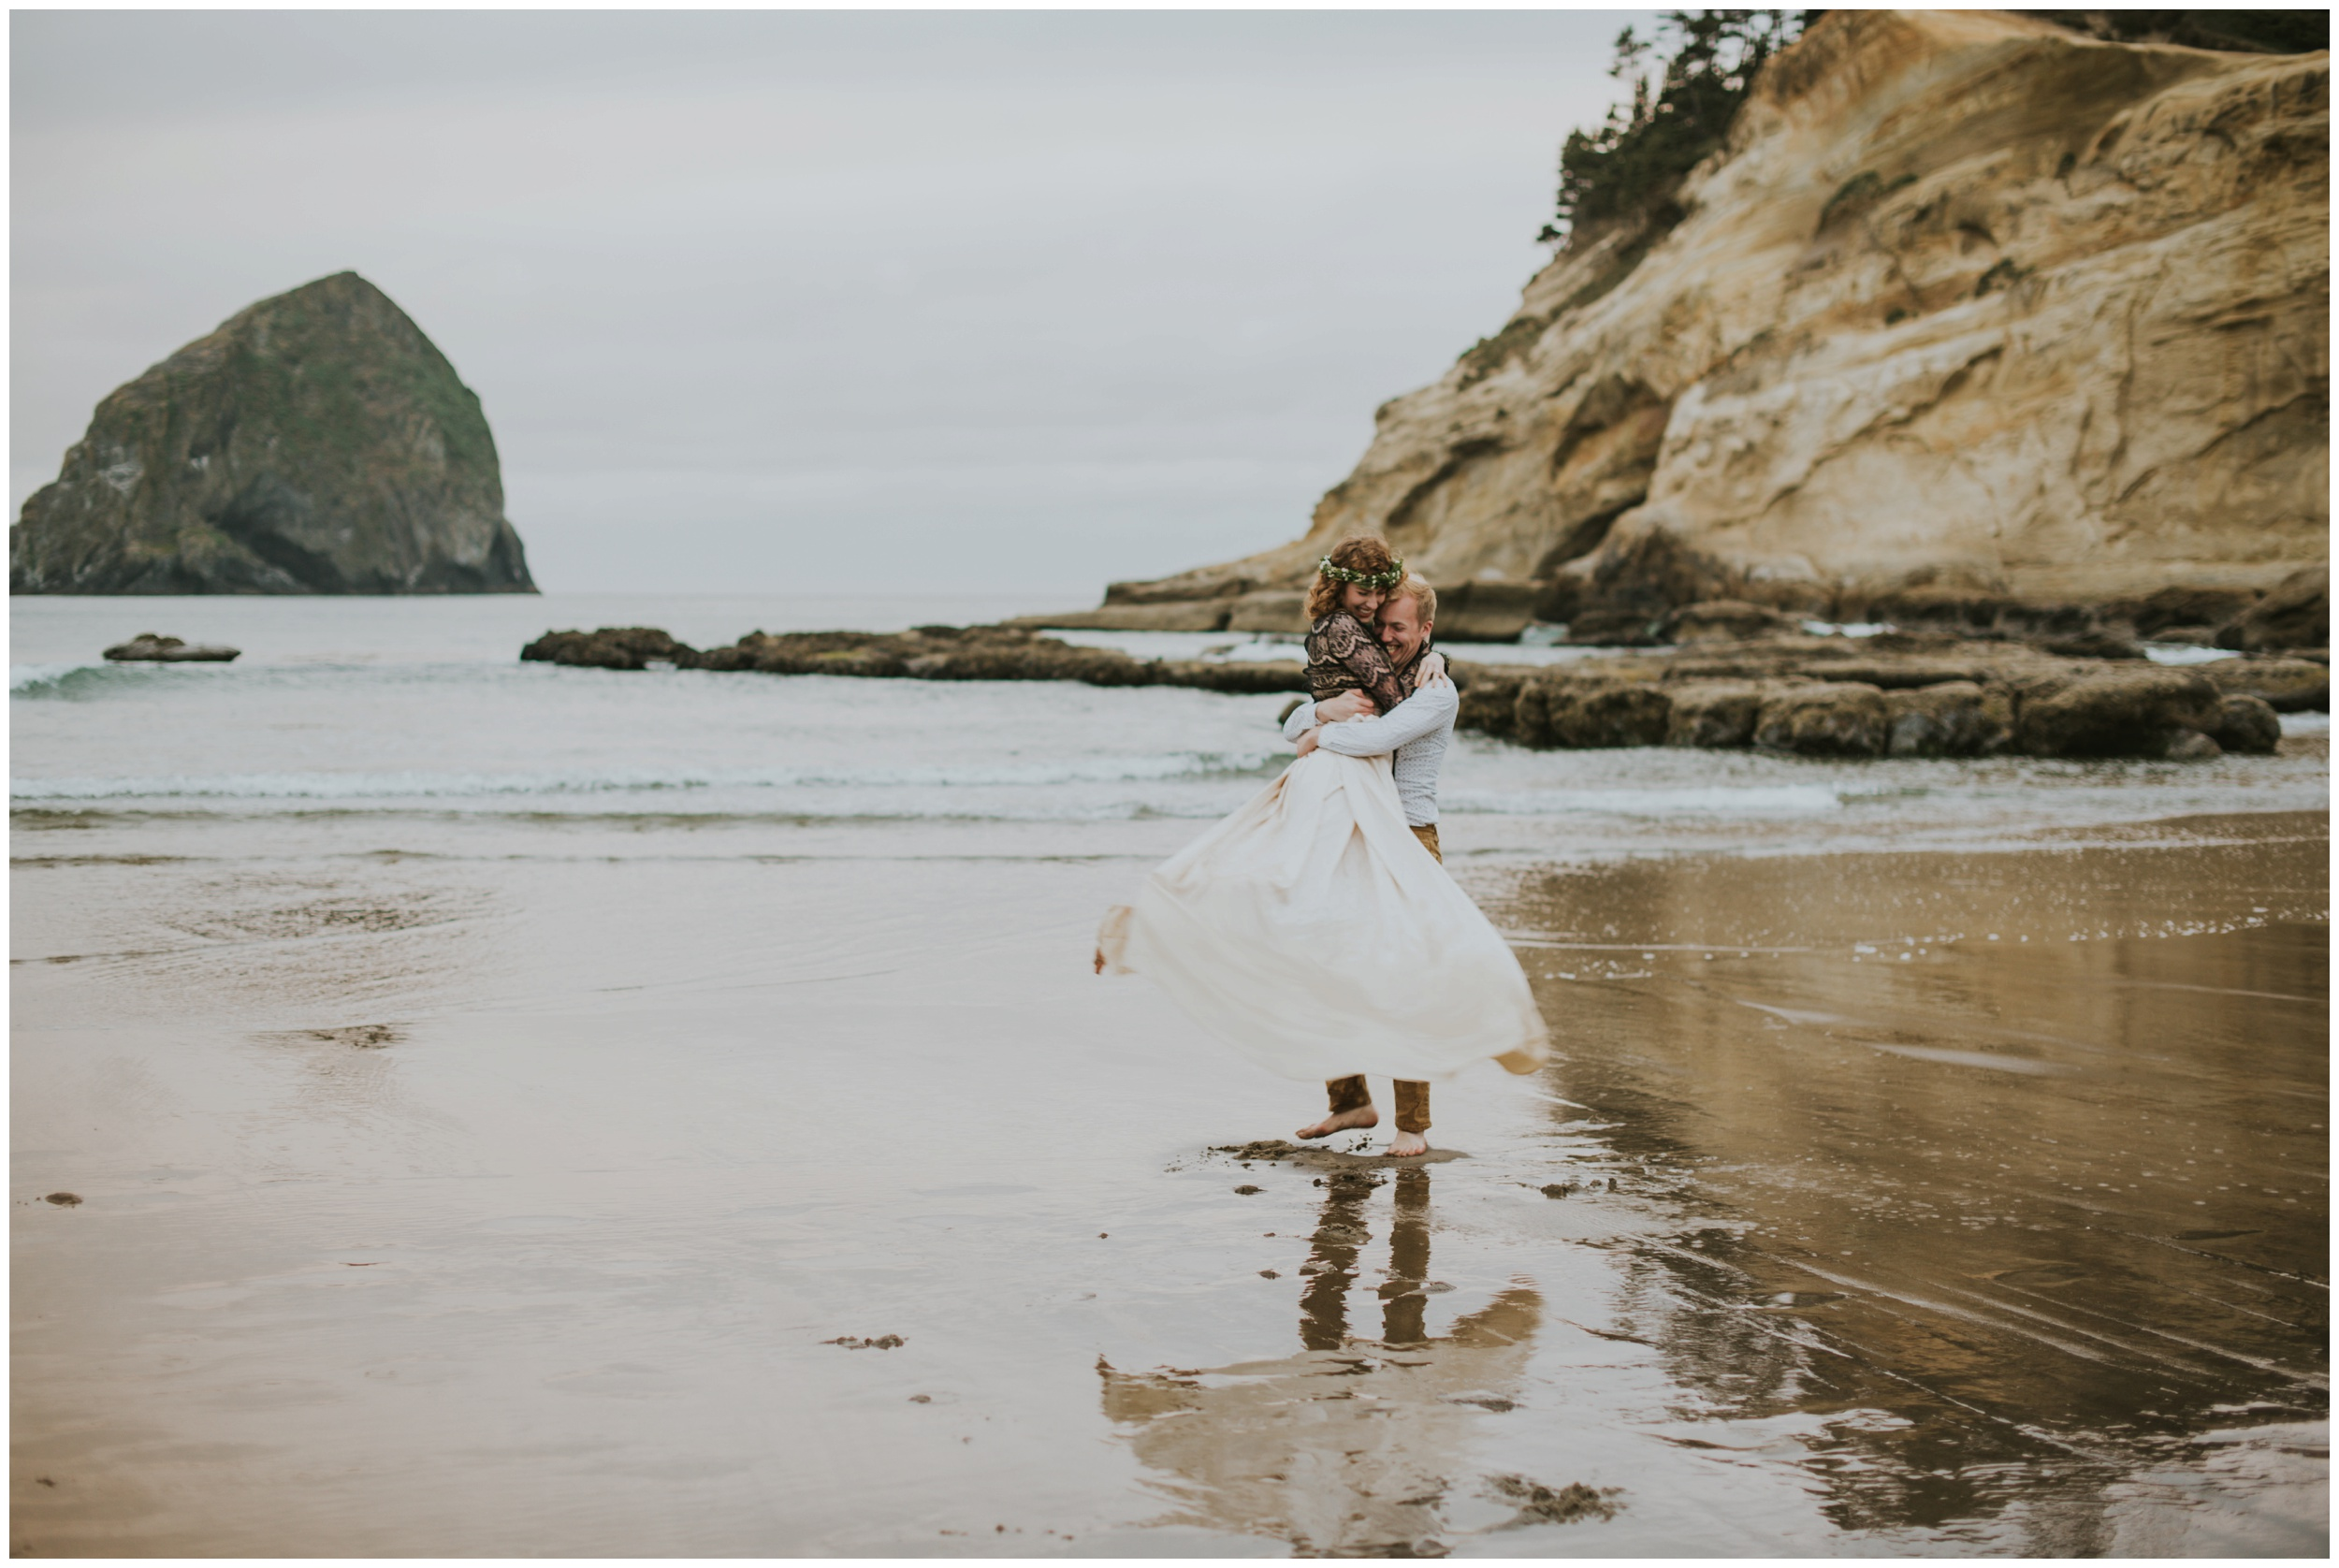 groom spinning bride at the beach  | Pacific City Wedding Photographer www.riversandroadsphotography.com